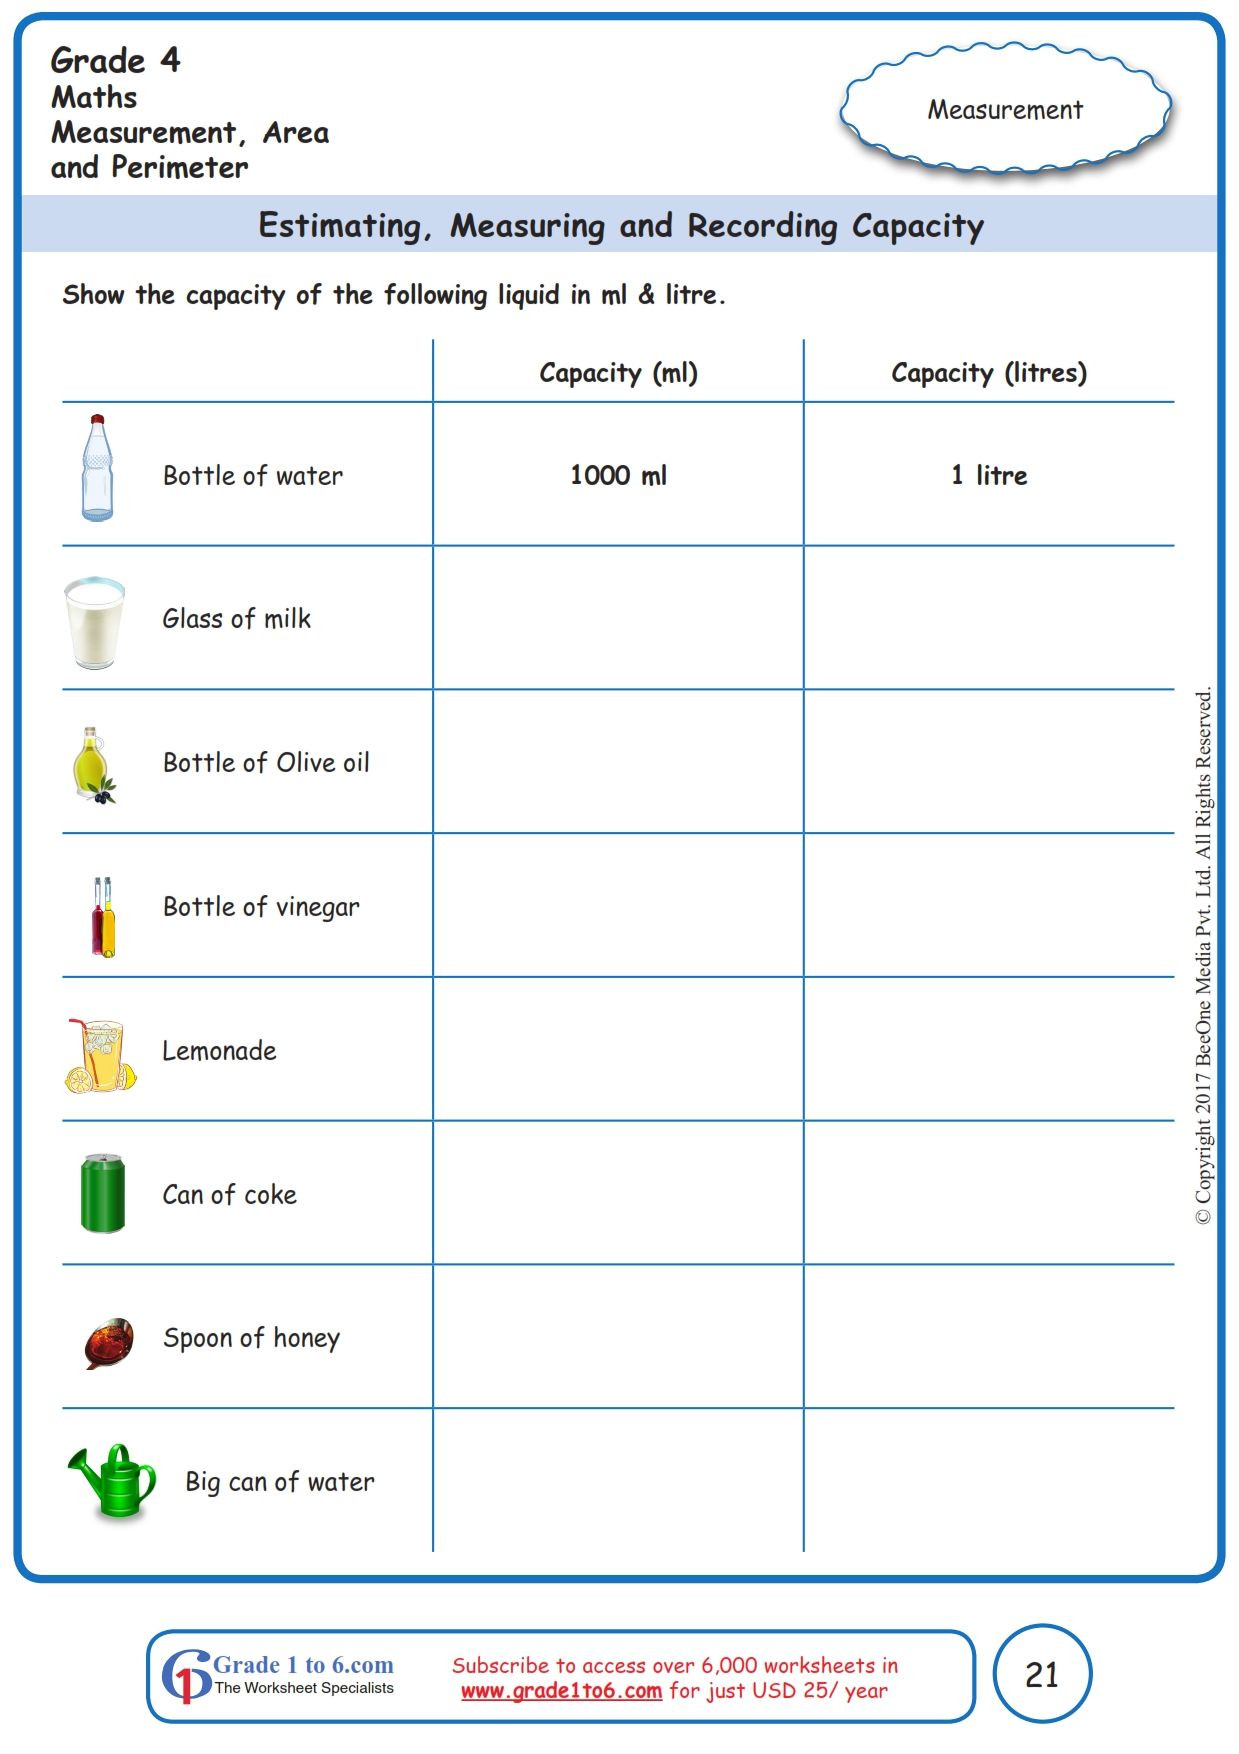 Capacity Worksheets 4th Grade Free Math Worksheets for Grade 1 Through Grade 6 Subscribe